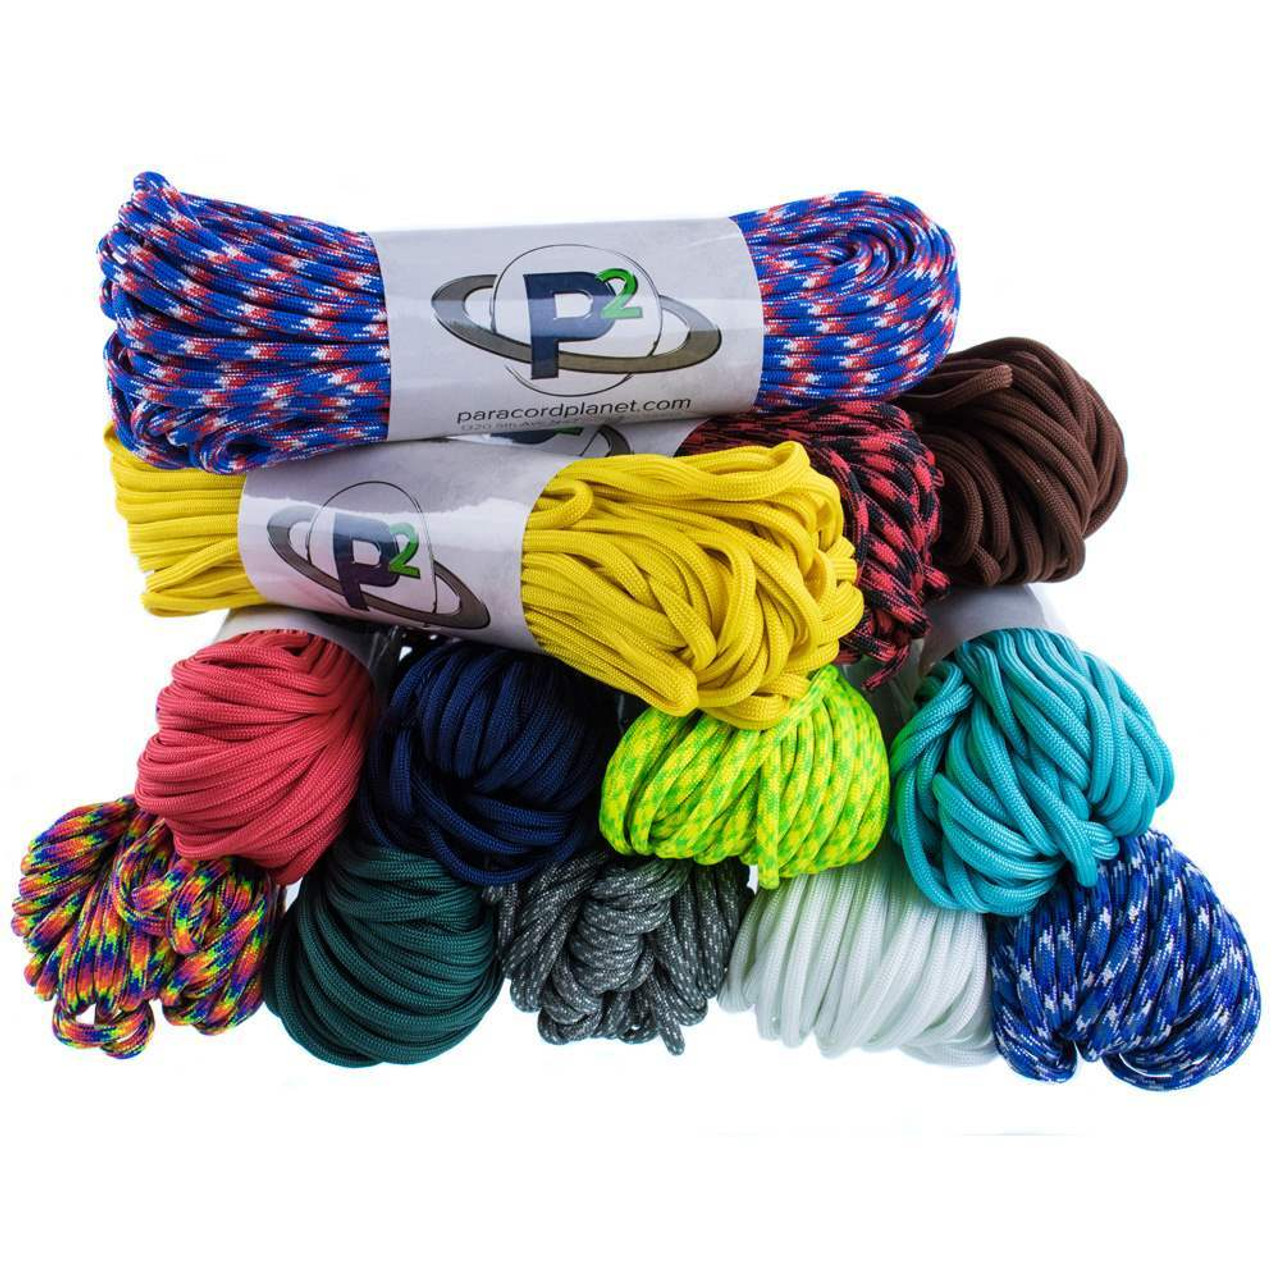 Image result for best paracord